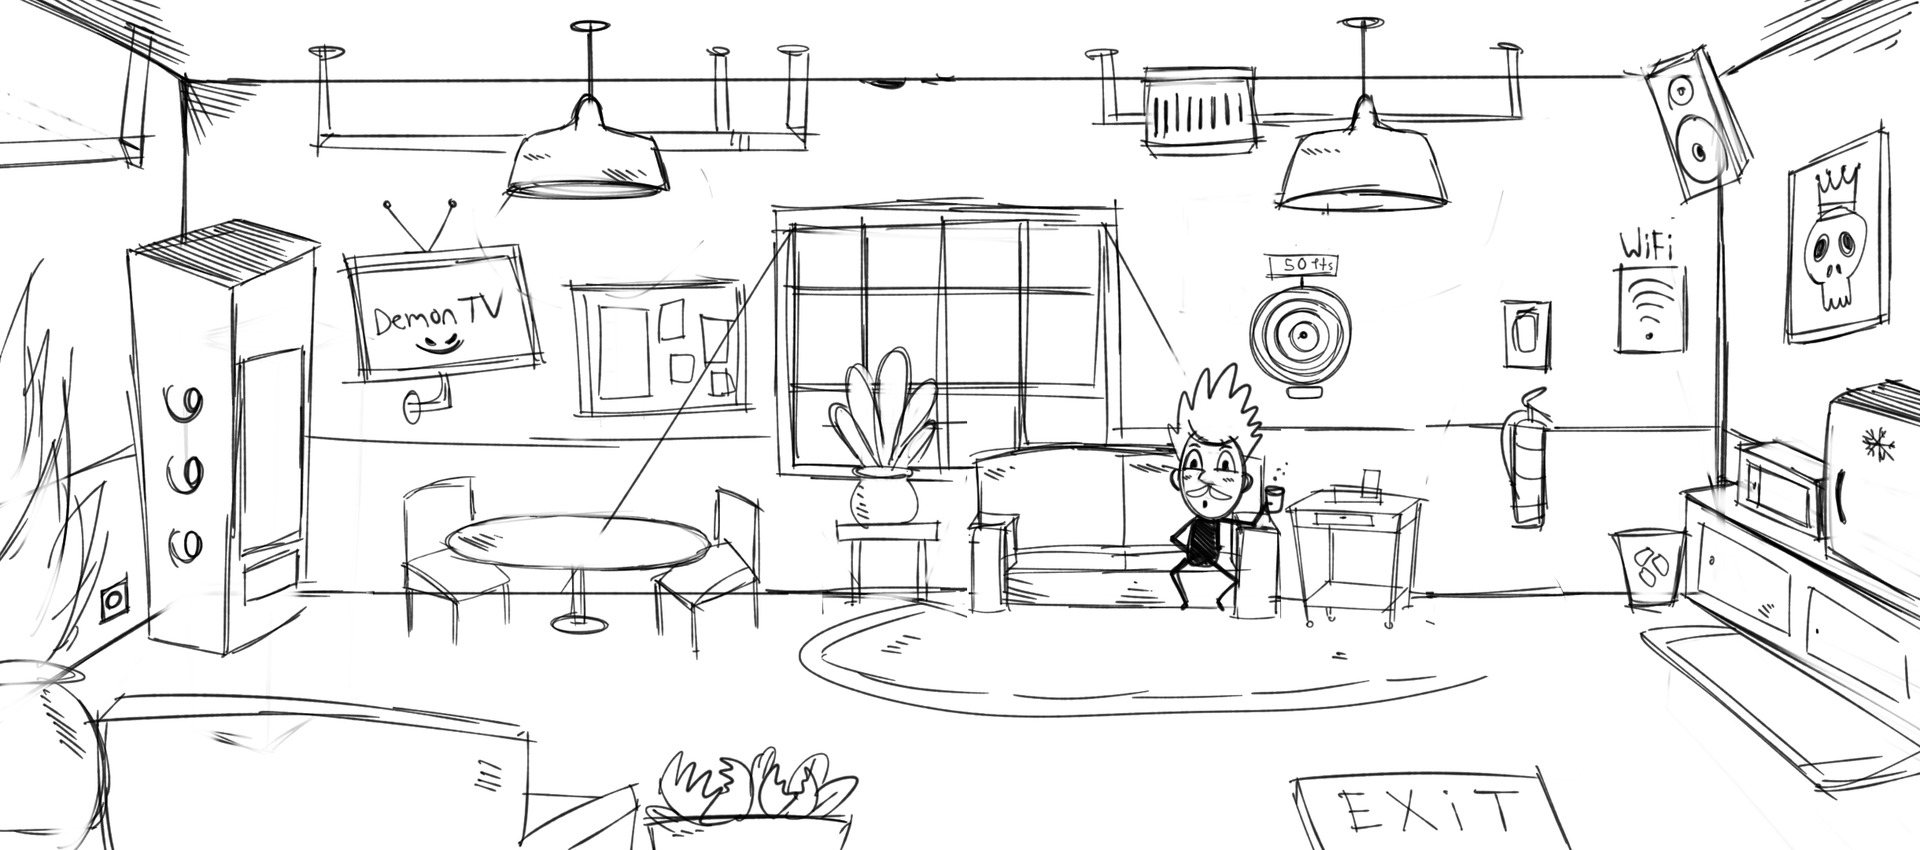 Early sketch: Staff room